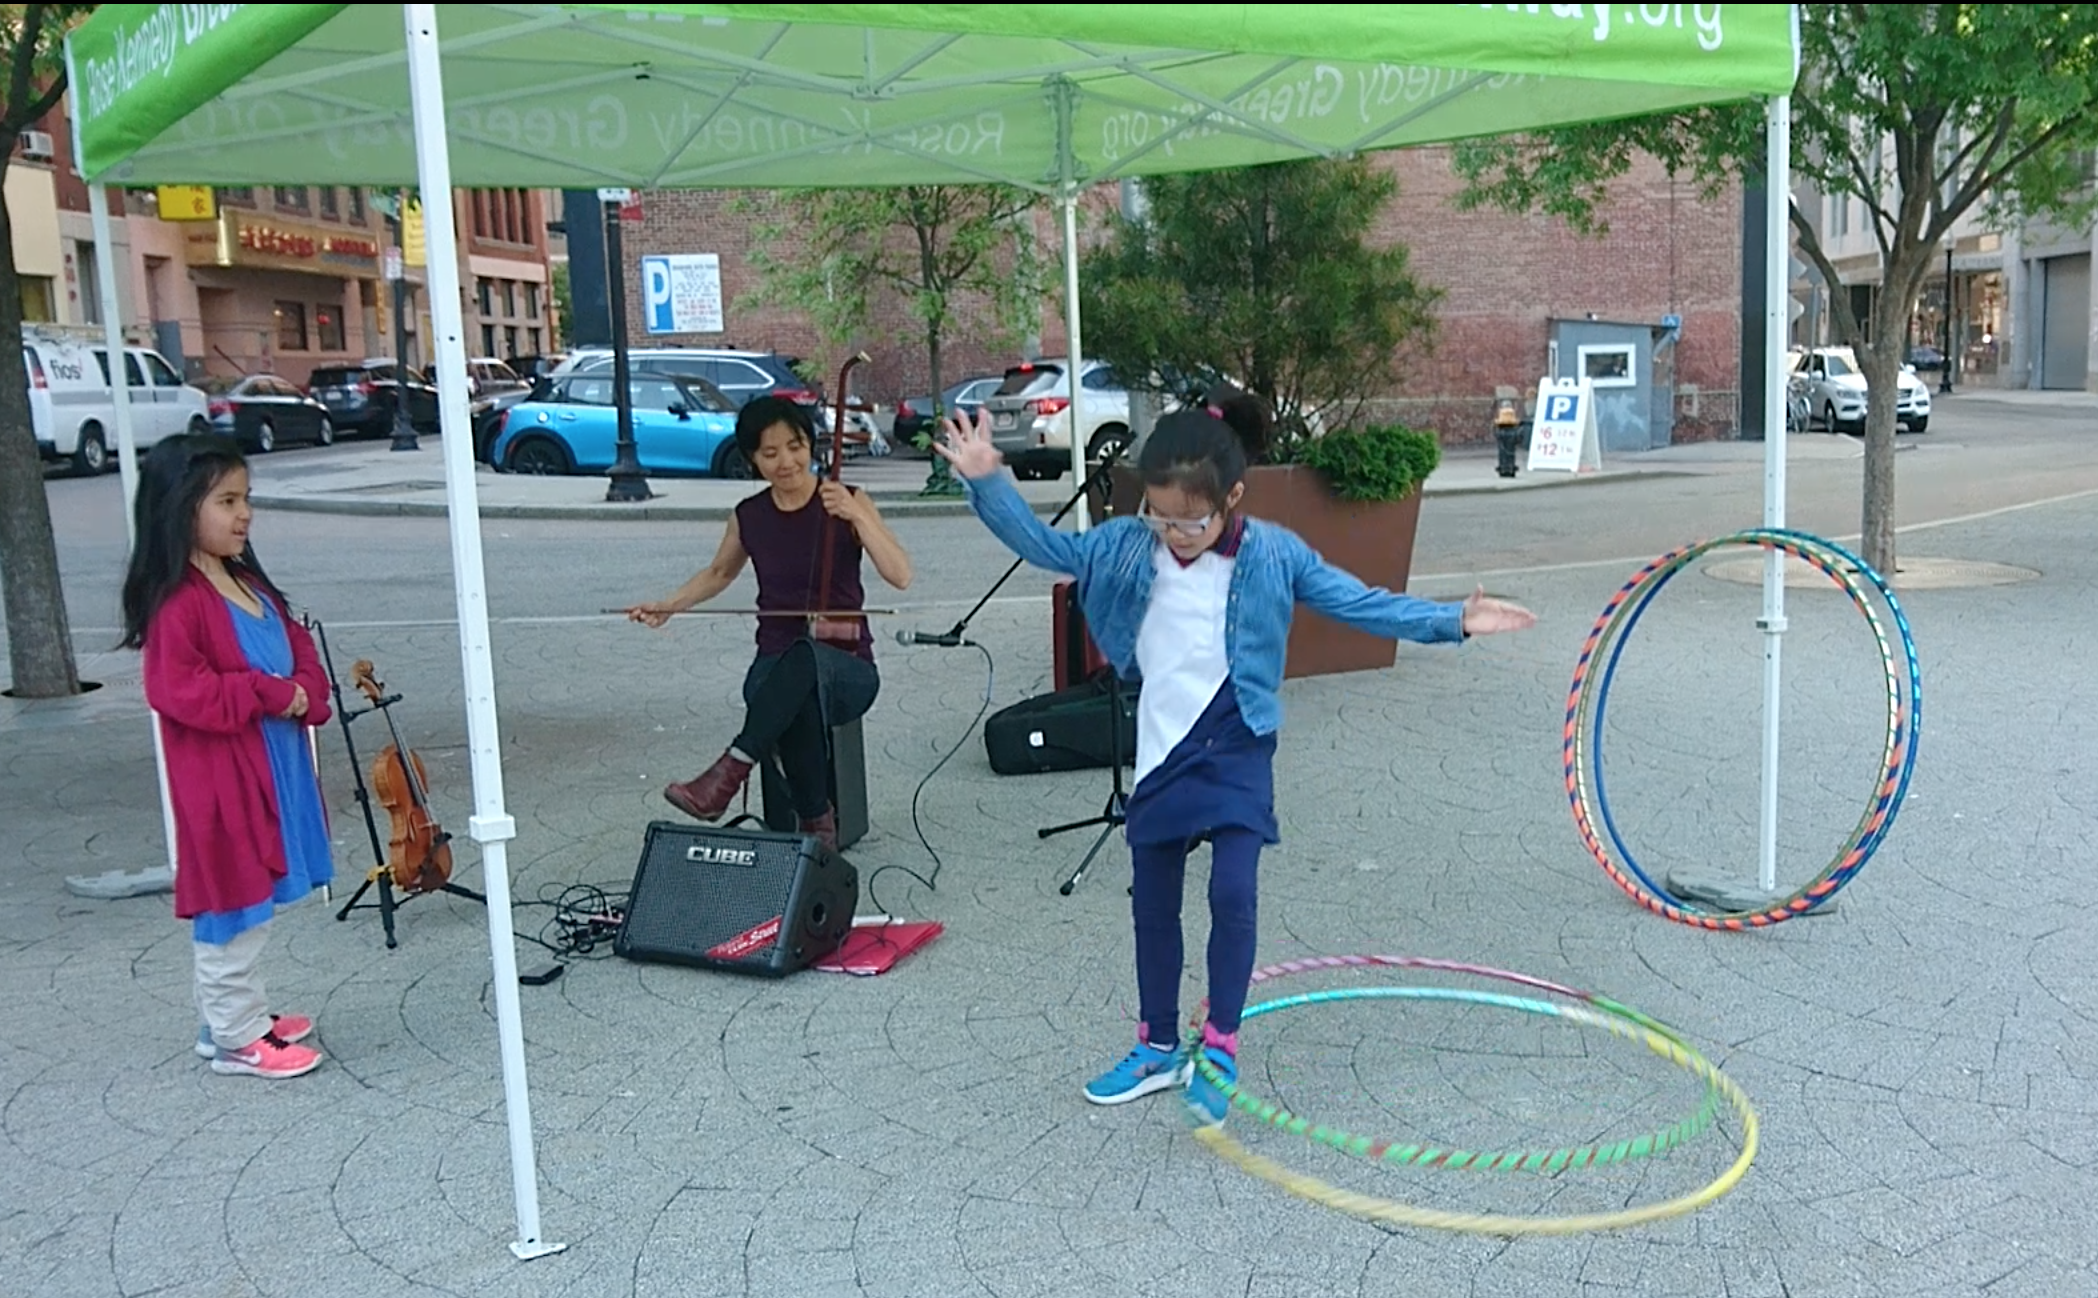 Probable world premiere of  erhu  racing horses and hula hoop duet! International Song Exchange at the Chinatown Gate/ Greenway park